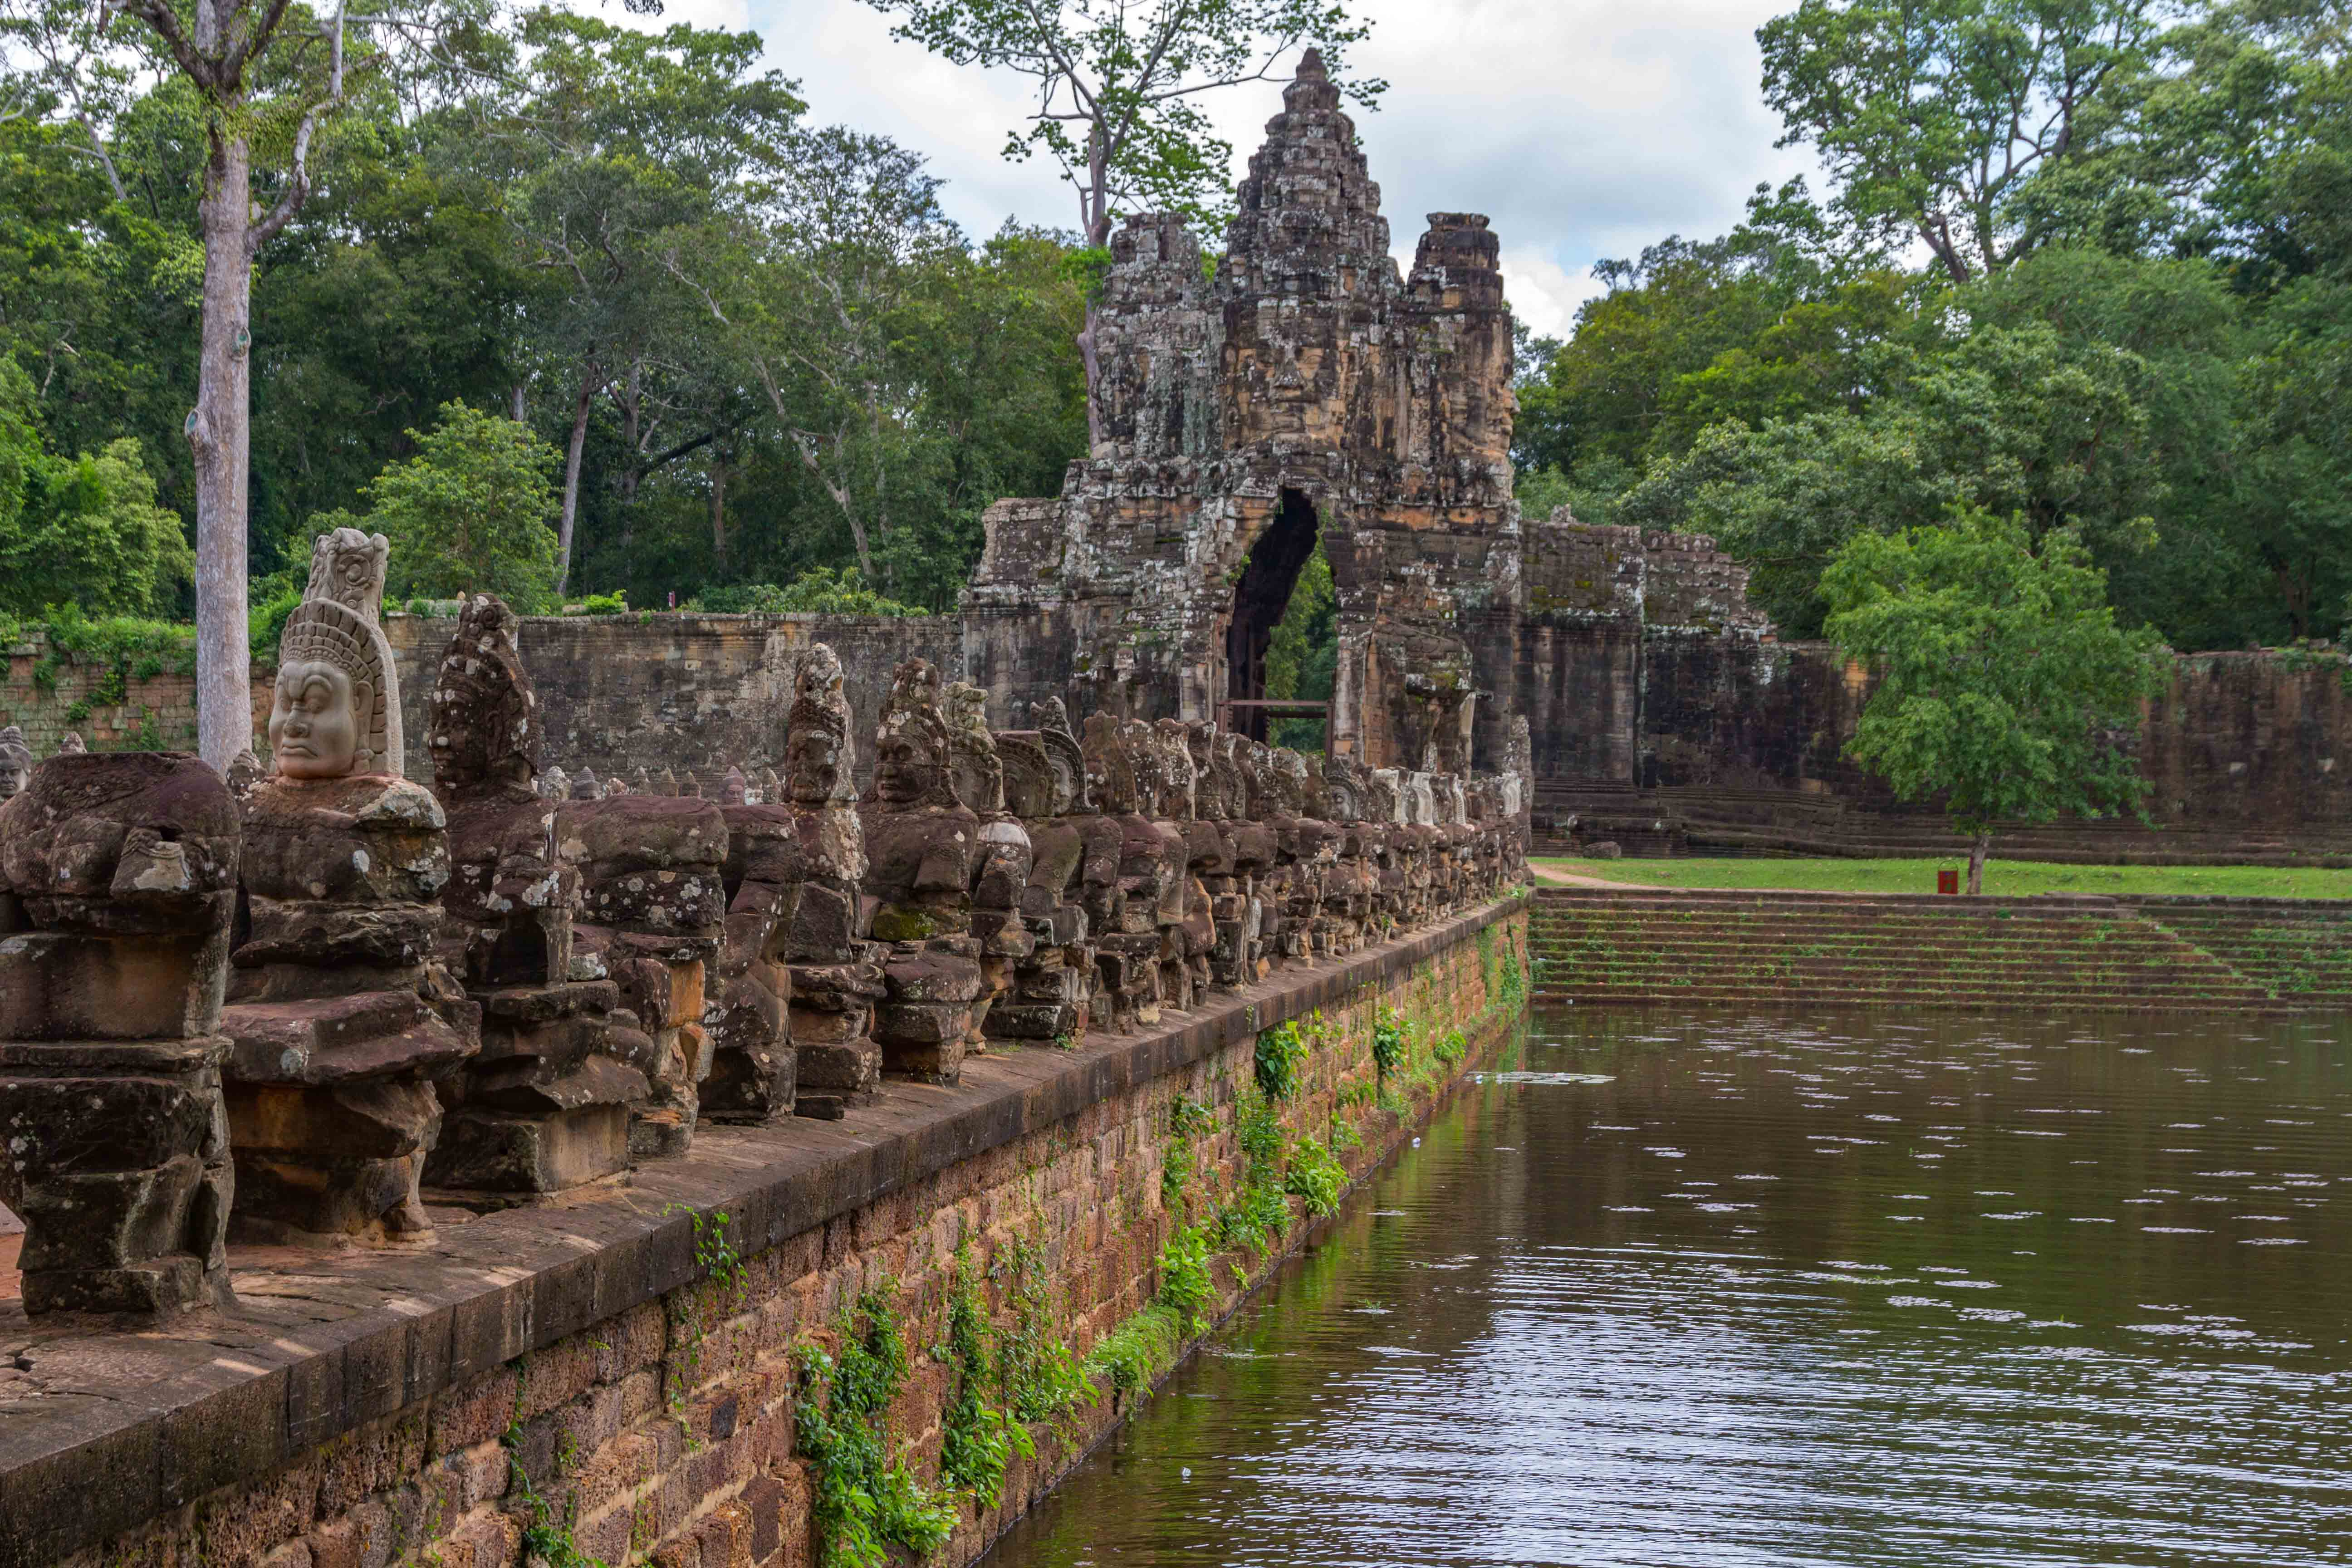 The South Gate, Angkor Thom Entrance Heads